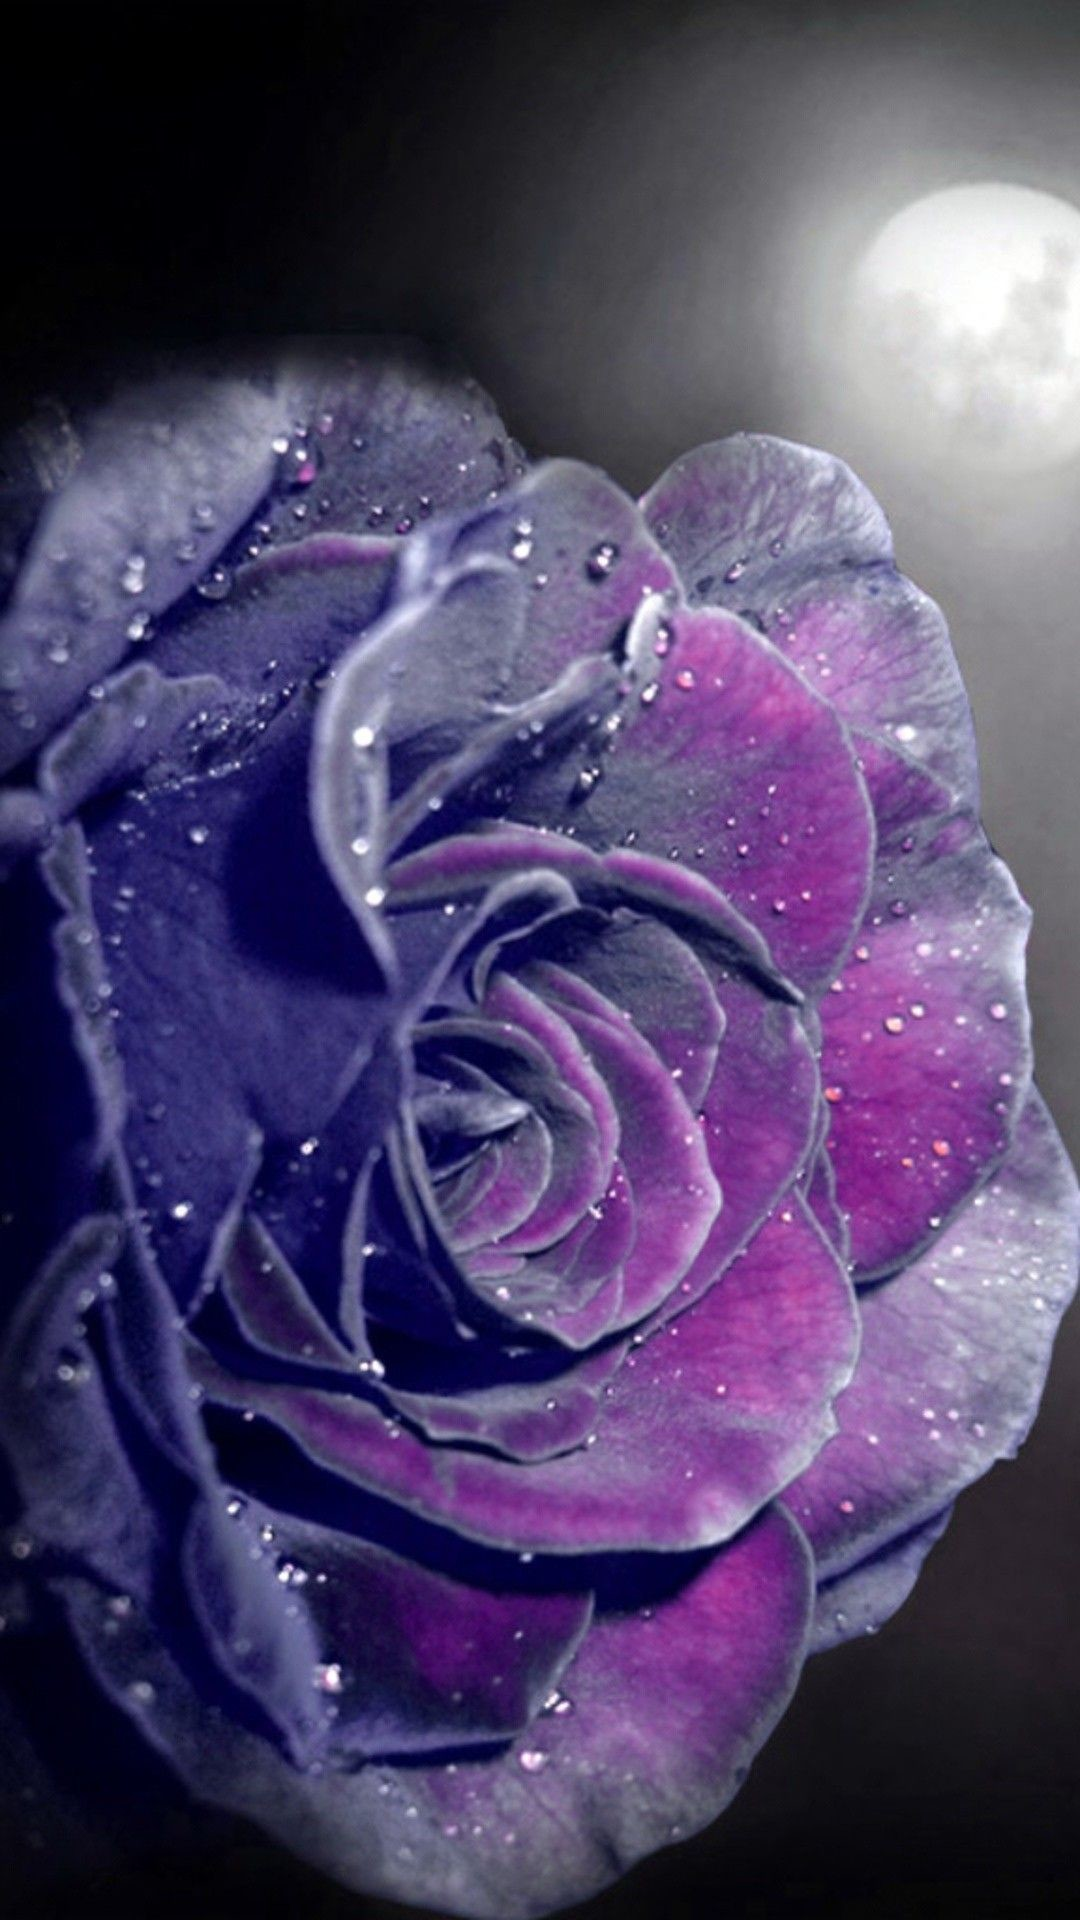 Wet Purple Rose Wallpaper 1920x1200